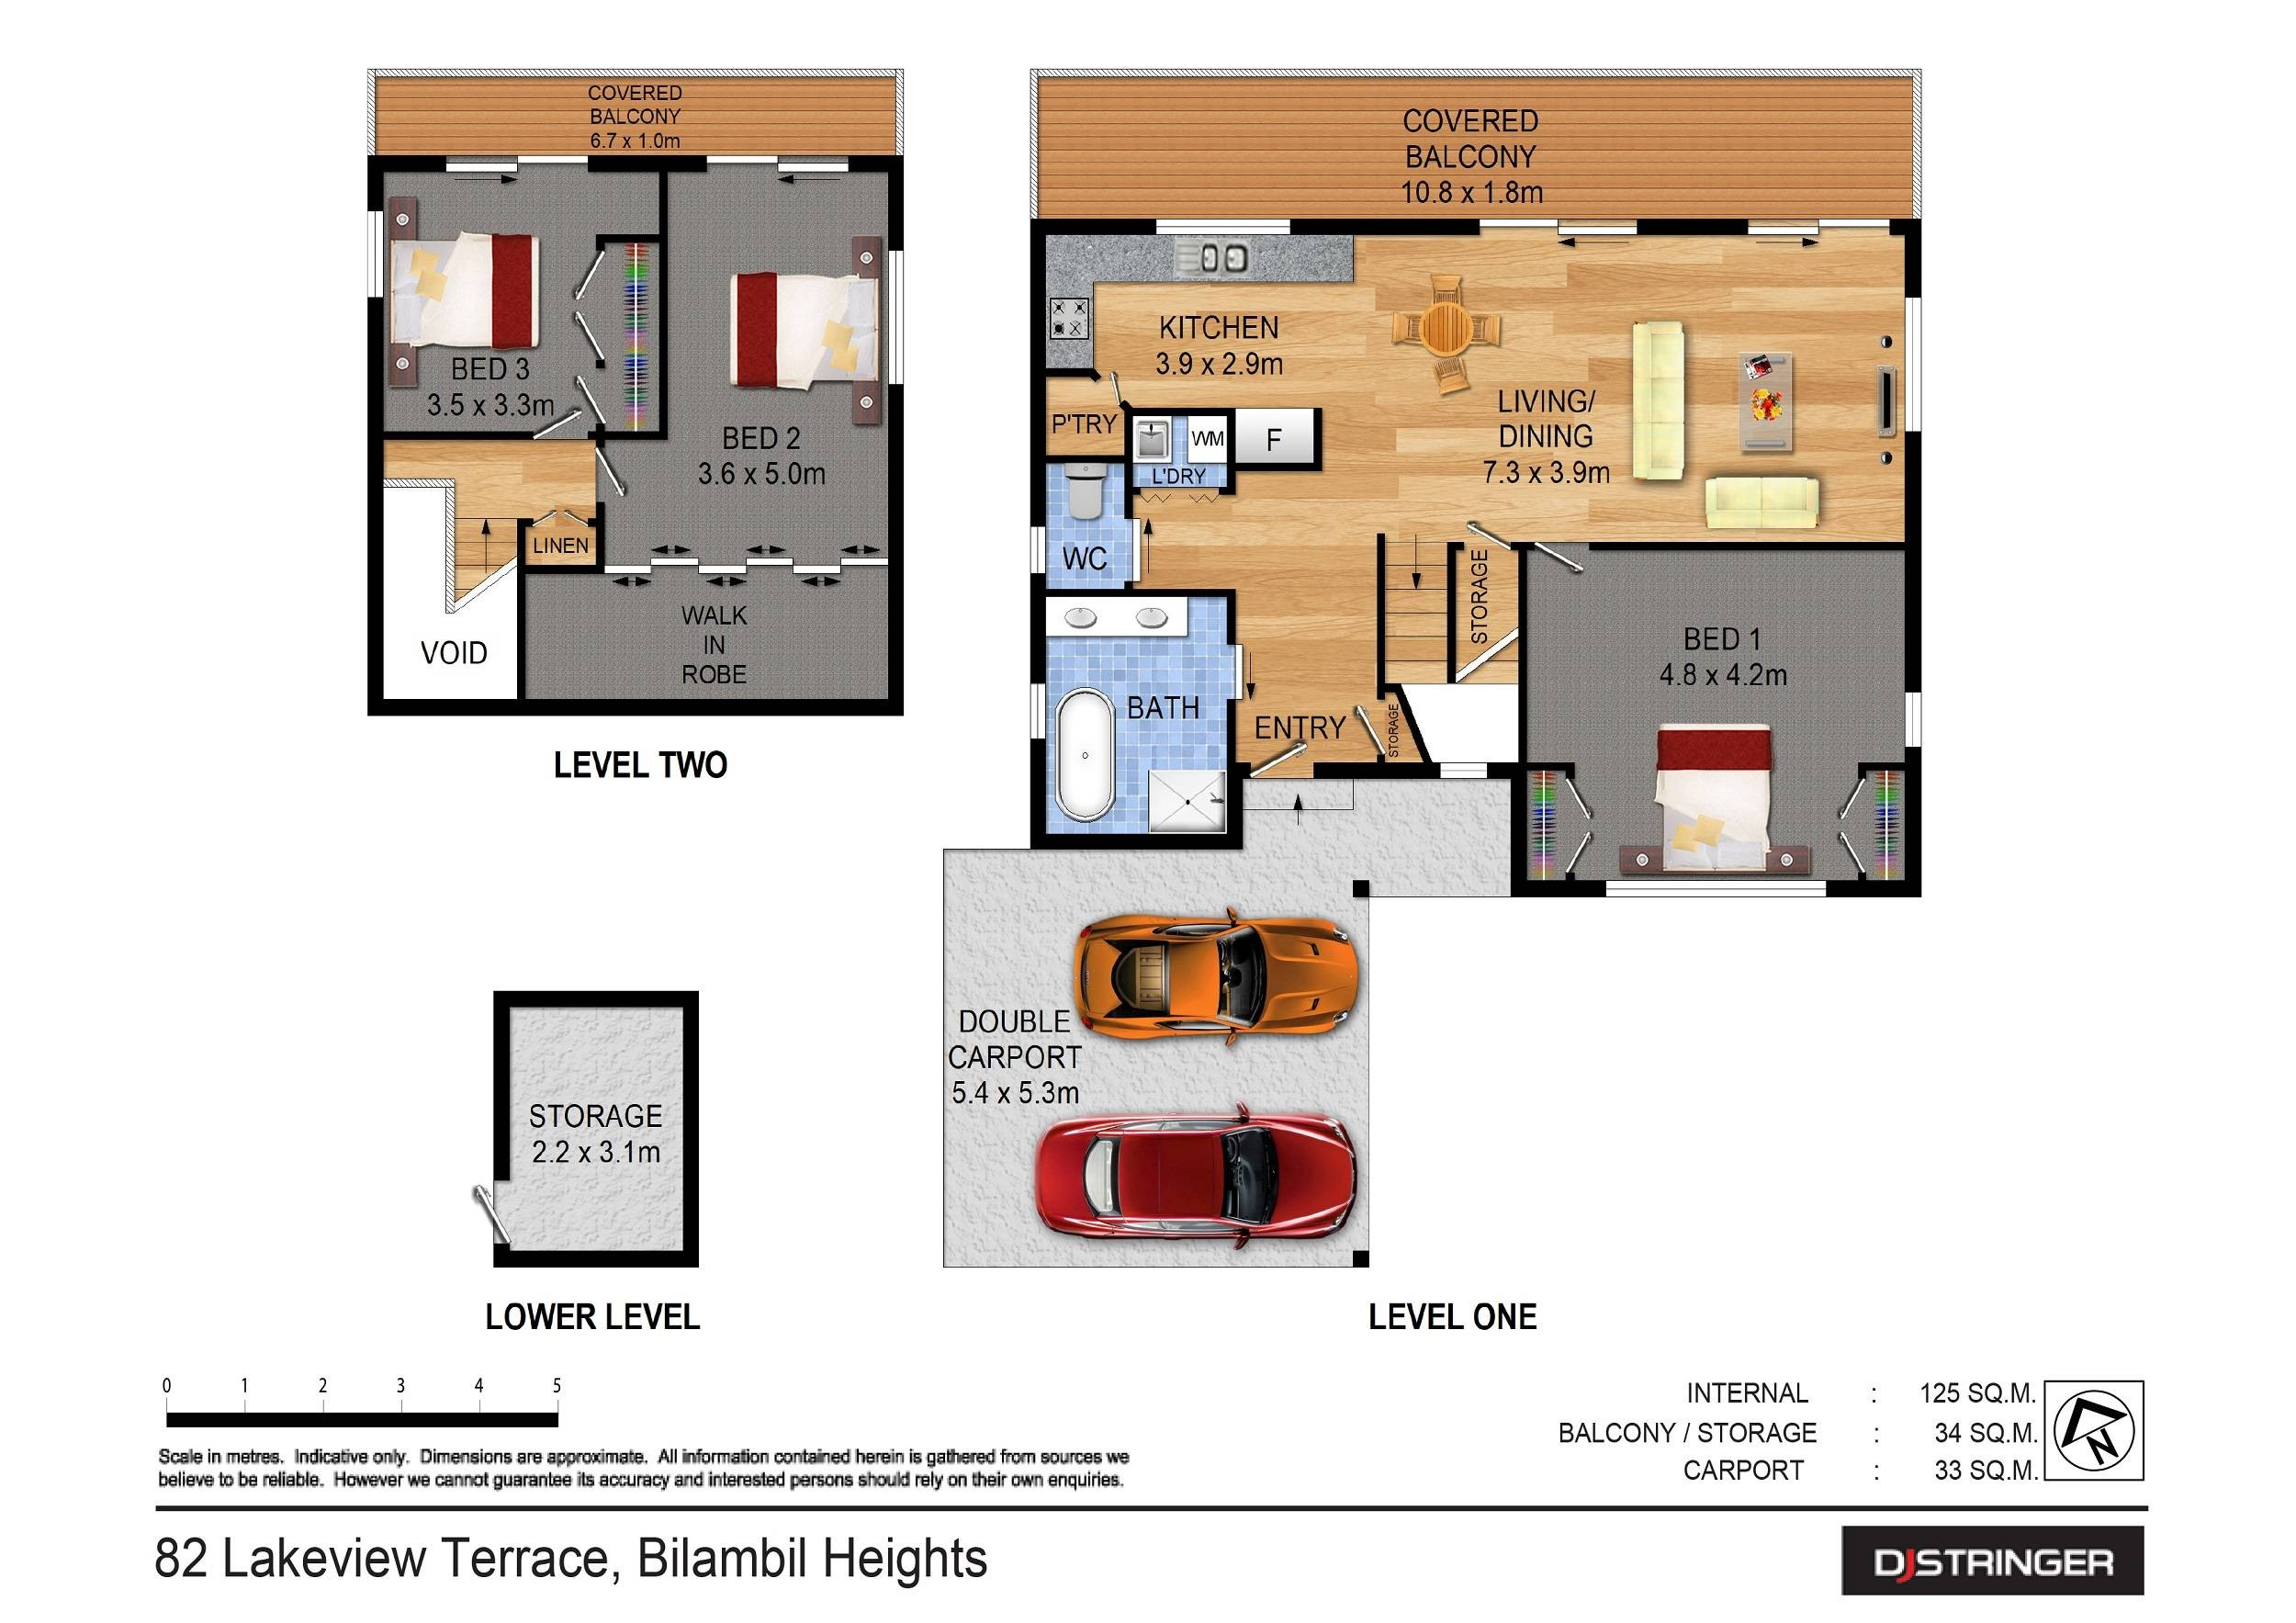 82 Lakeview Terrace Bilambil Heights